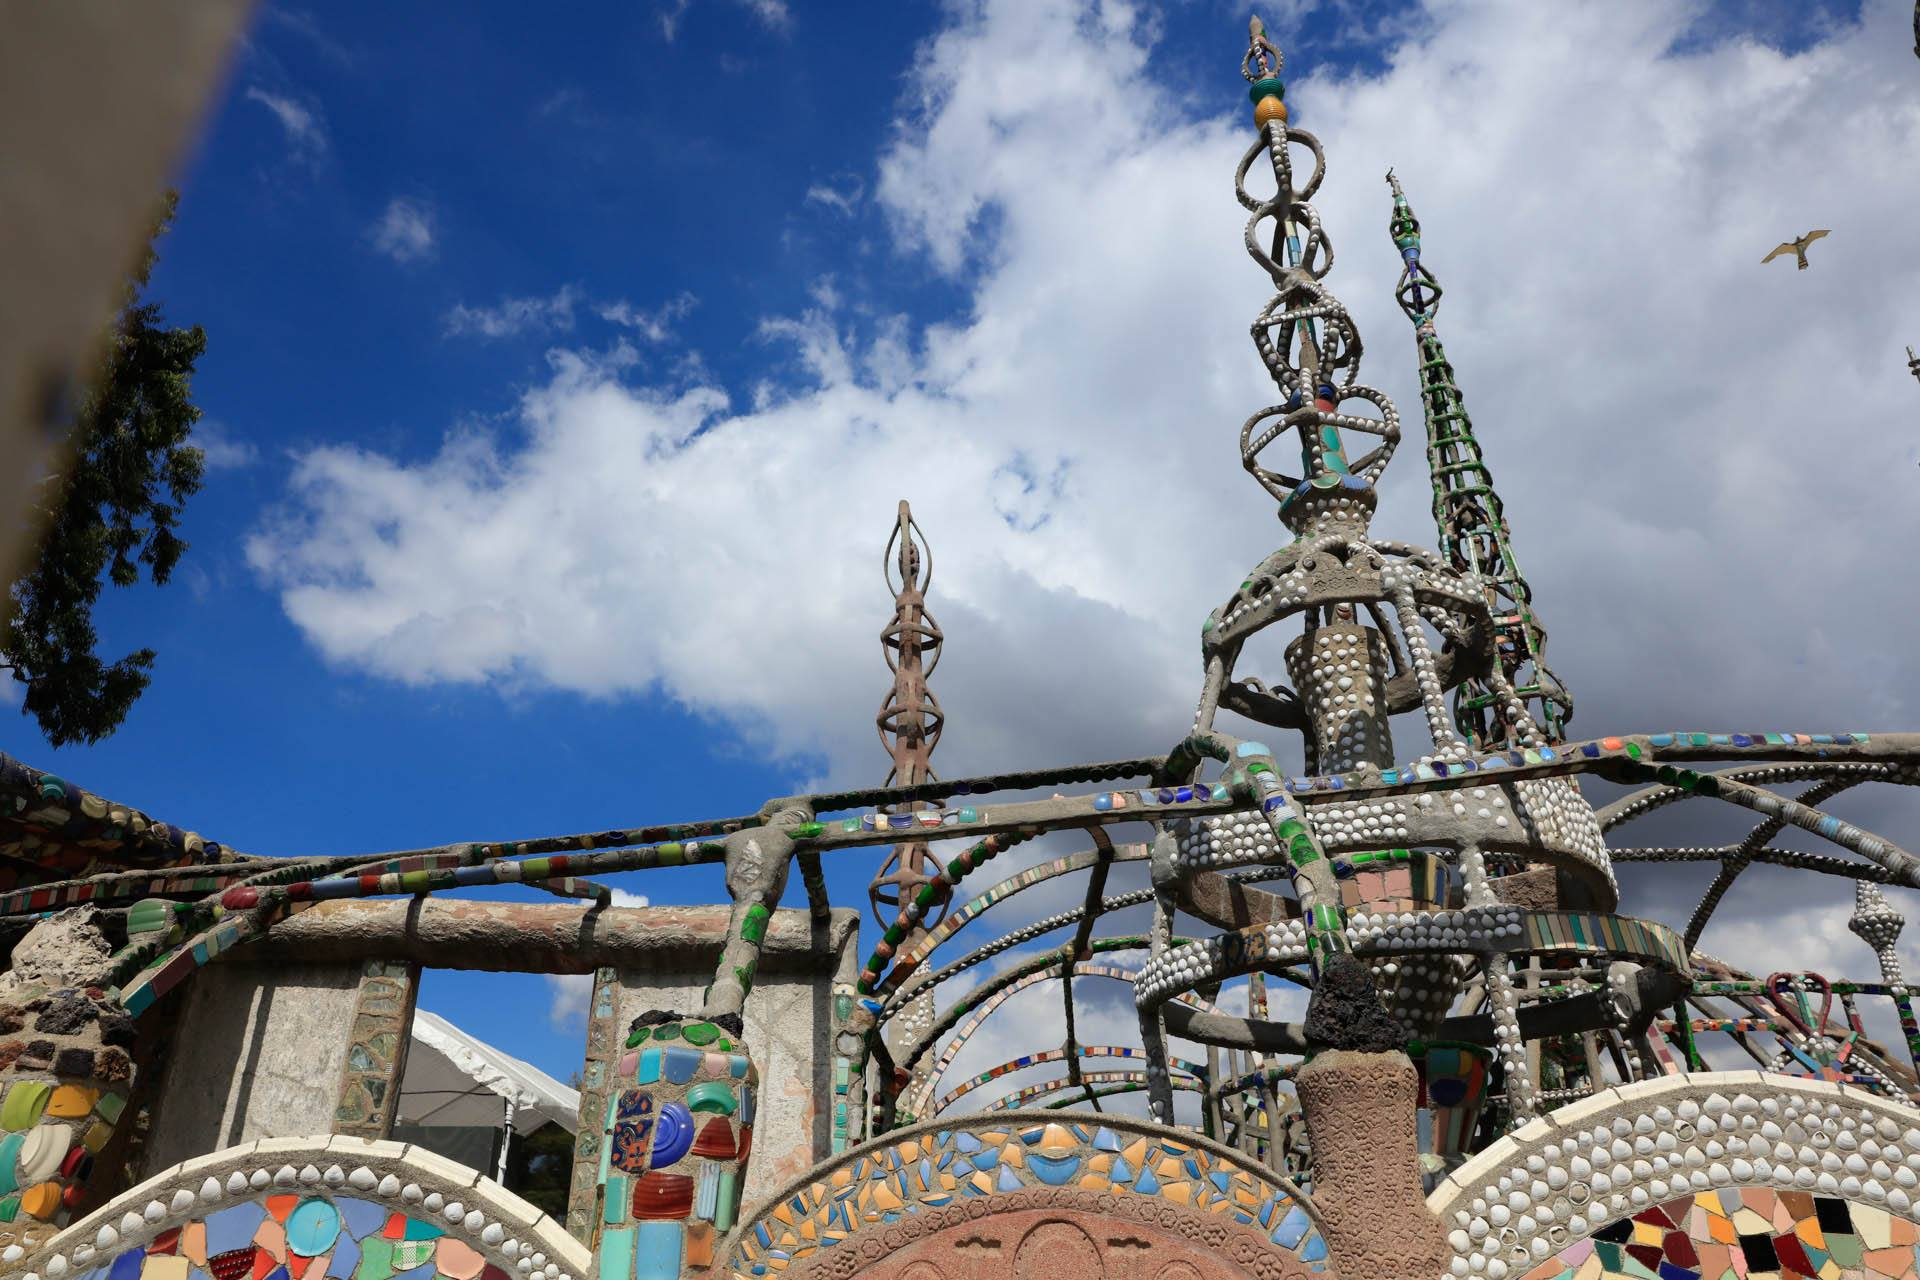 Watts Towers in South Los Angeles